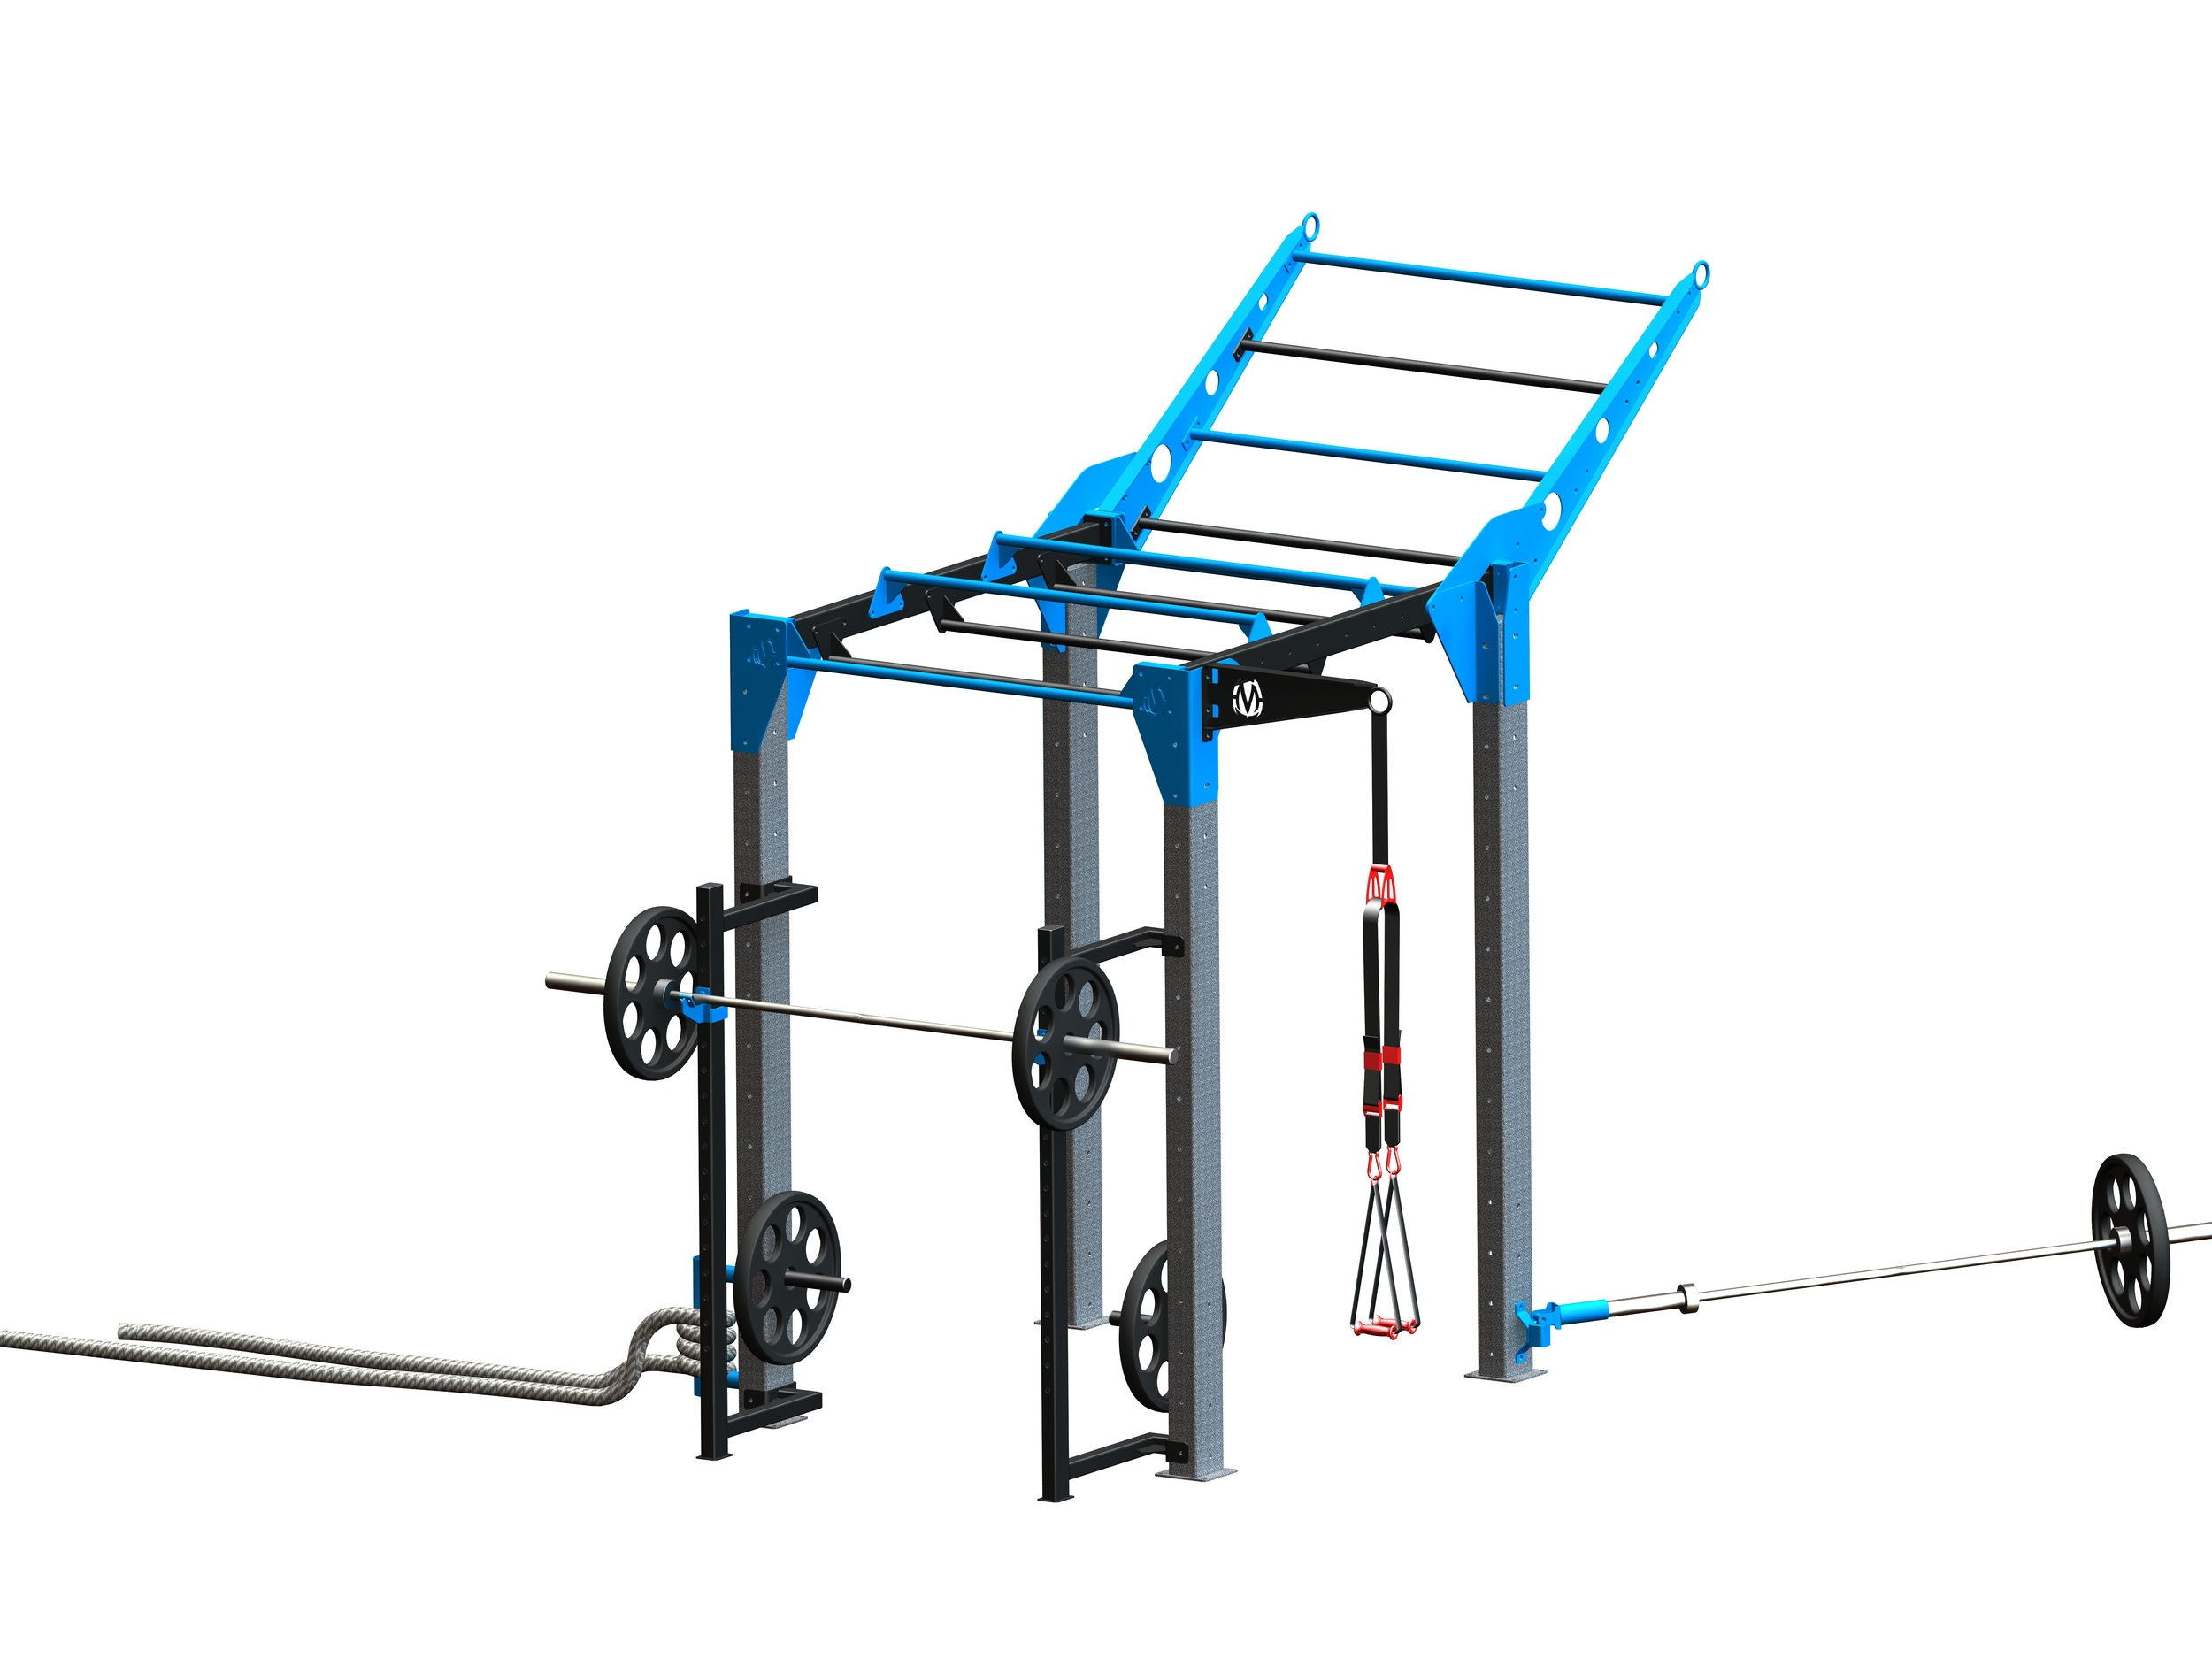 """NOVA-4 FTS with Climber bar and NEW Squat Stand Uprights   New feature offers squat stand uprights with adjustable j-hooks to perform olympic barbell work.  11'11""""L x 5'7"""" W x 10'4"""" H ( with tiered climber bar at end) *"""